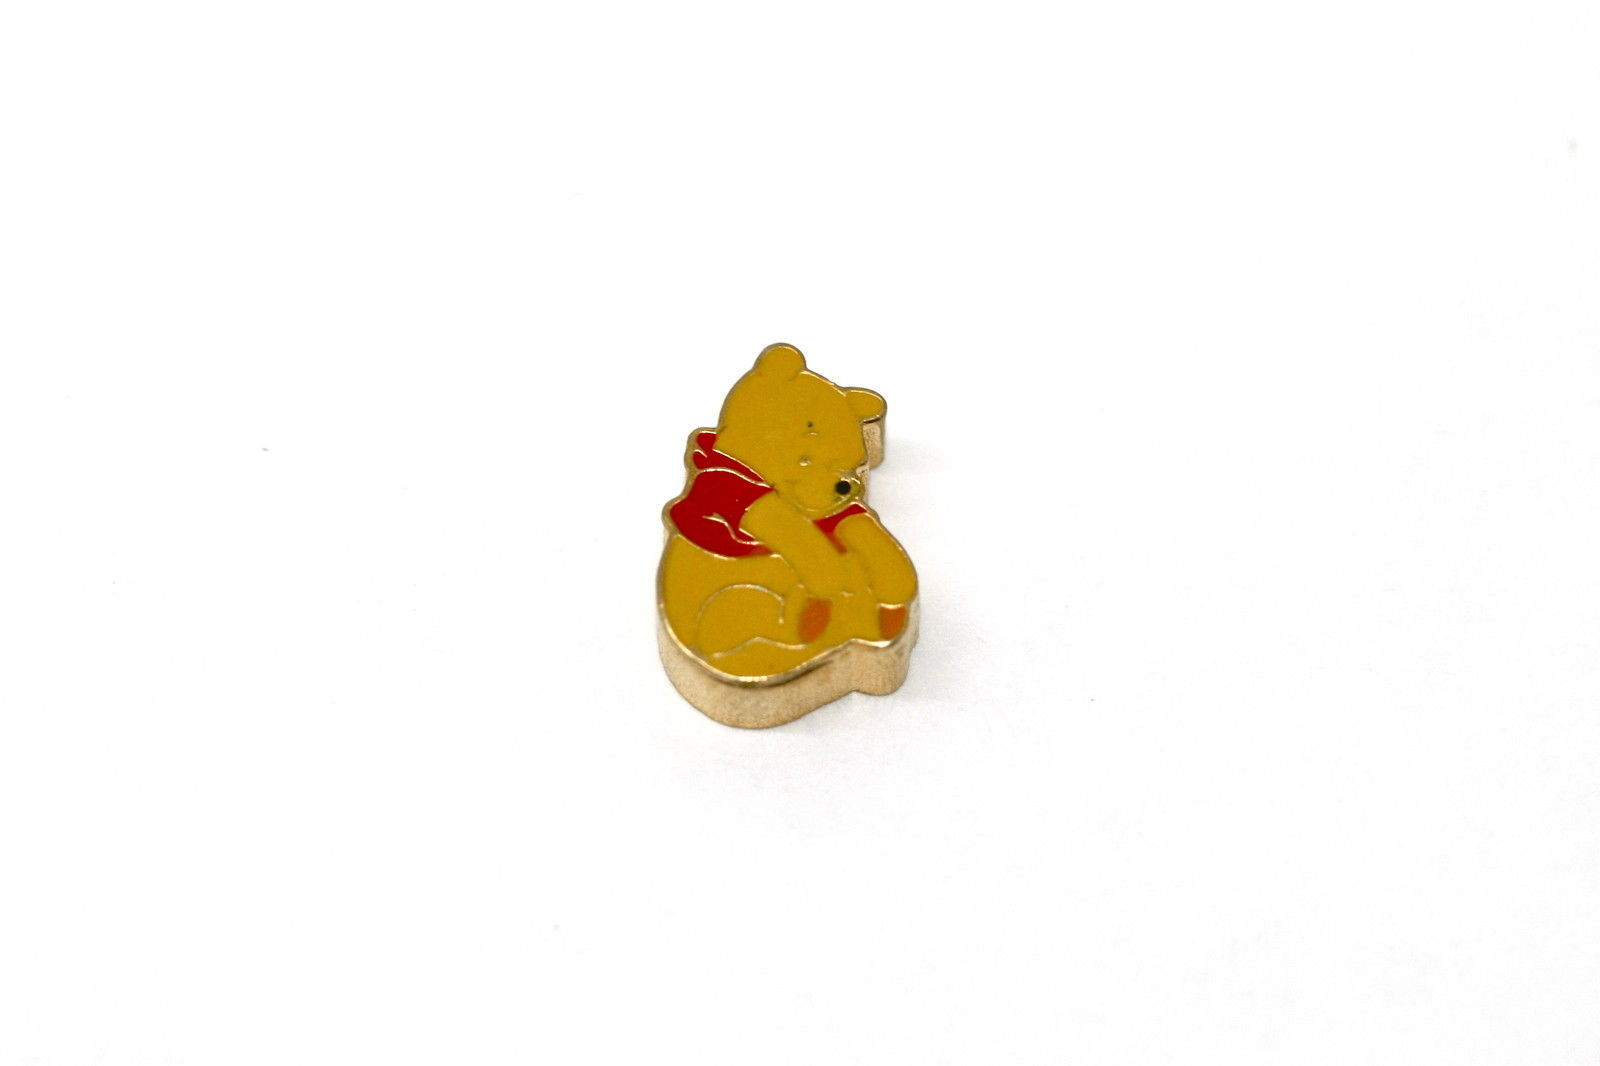 BRACCIALE DISNEY WINNIE THE POOH STAINLESS STEEL GOLD PLATED FLOATING CHARM